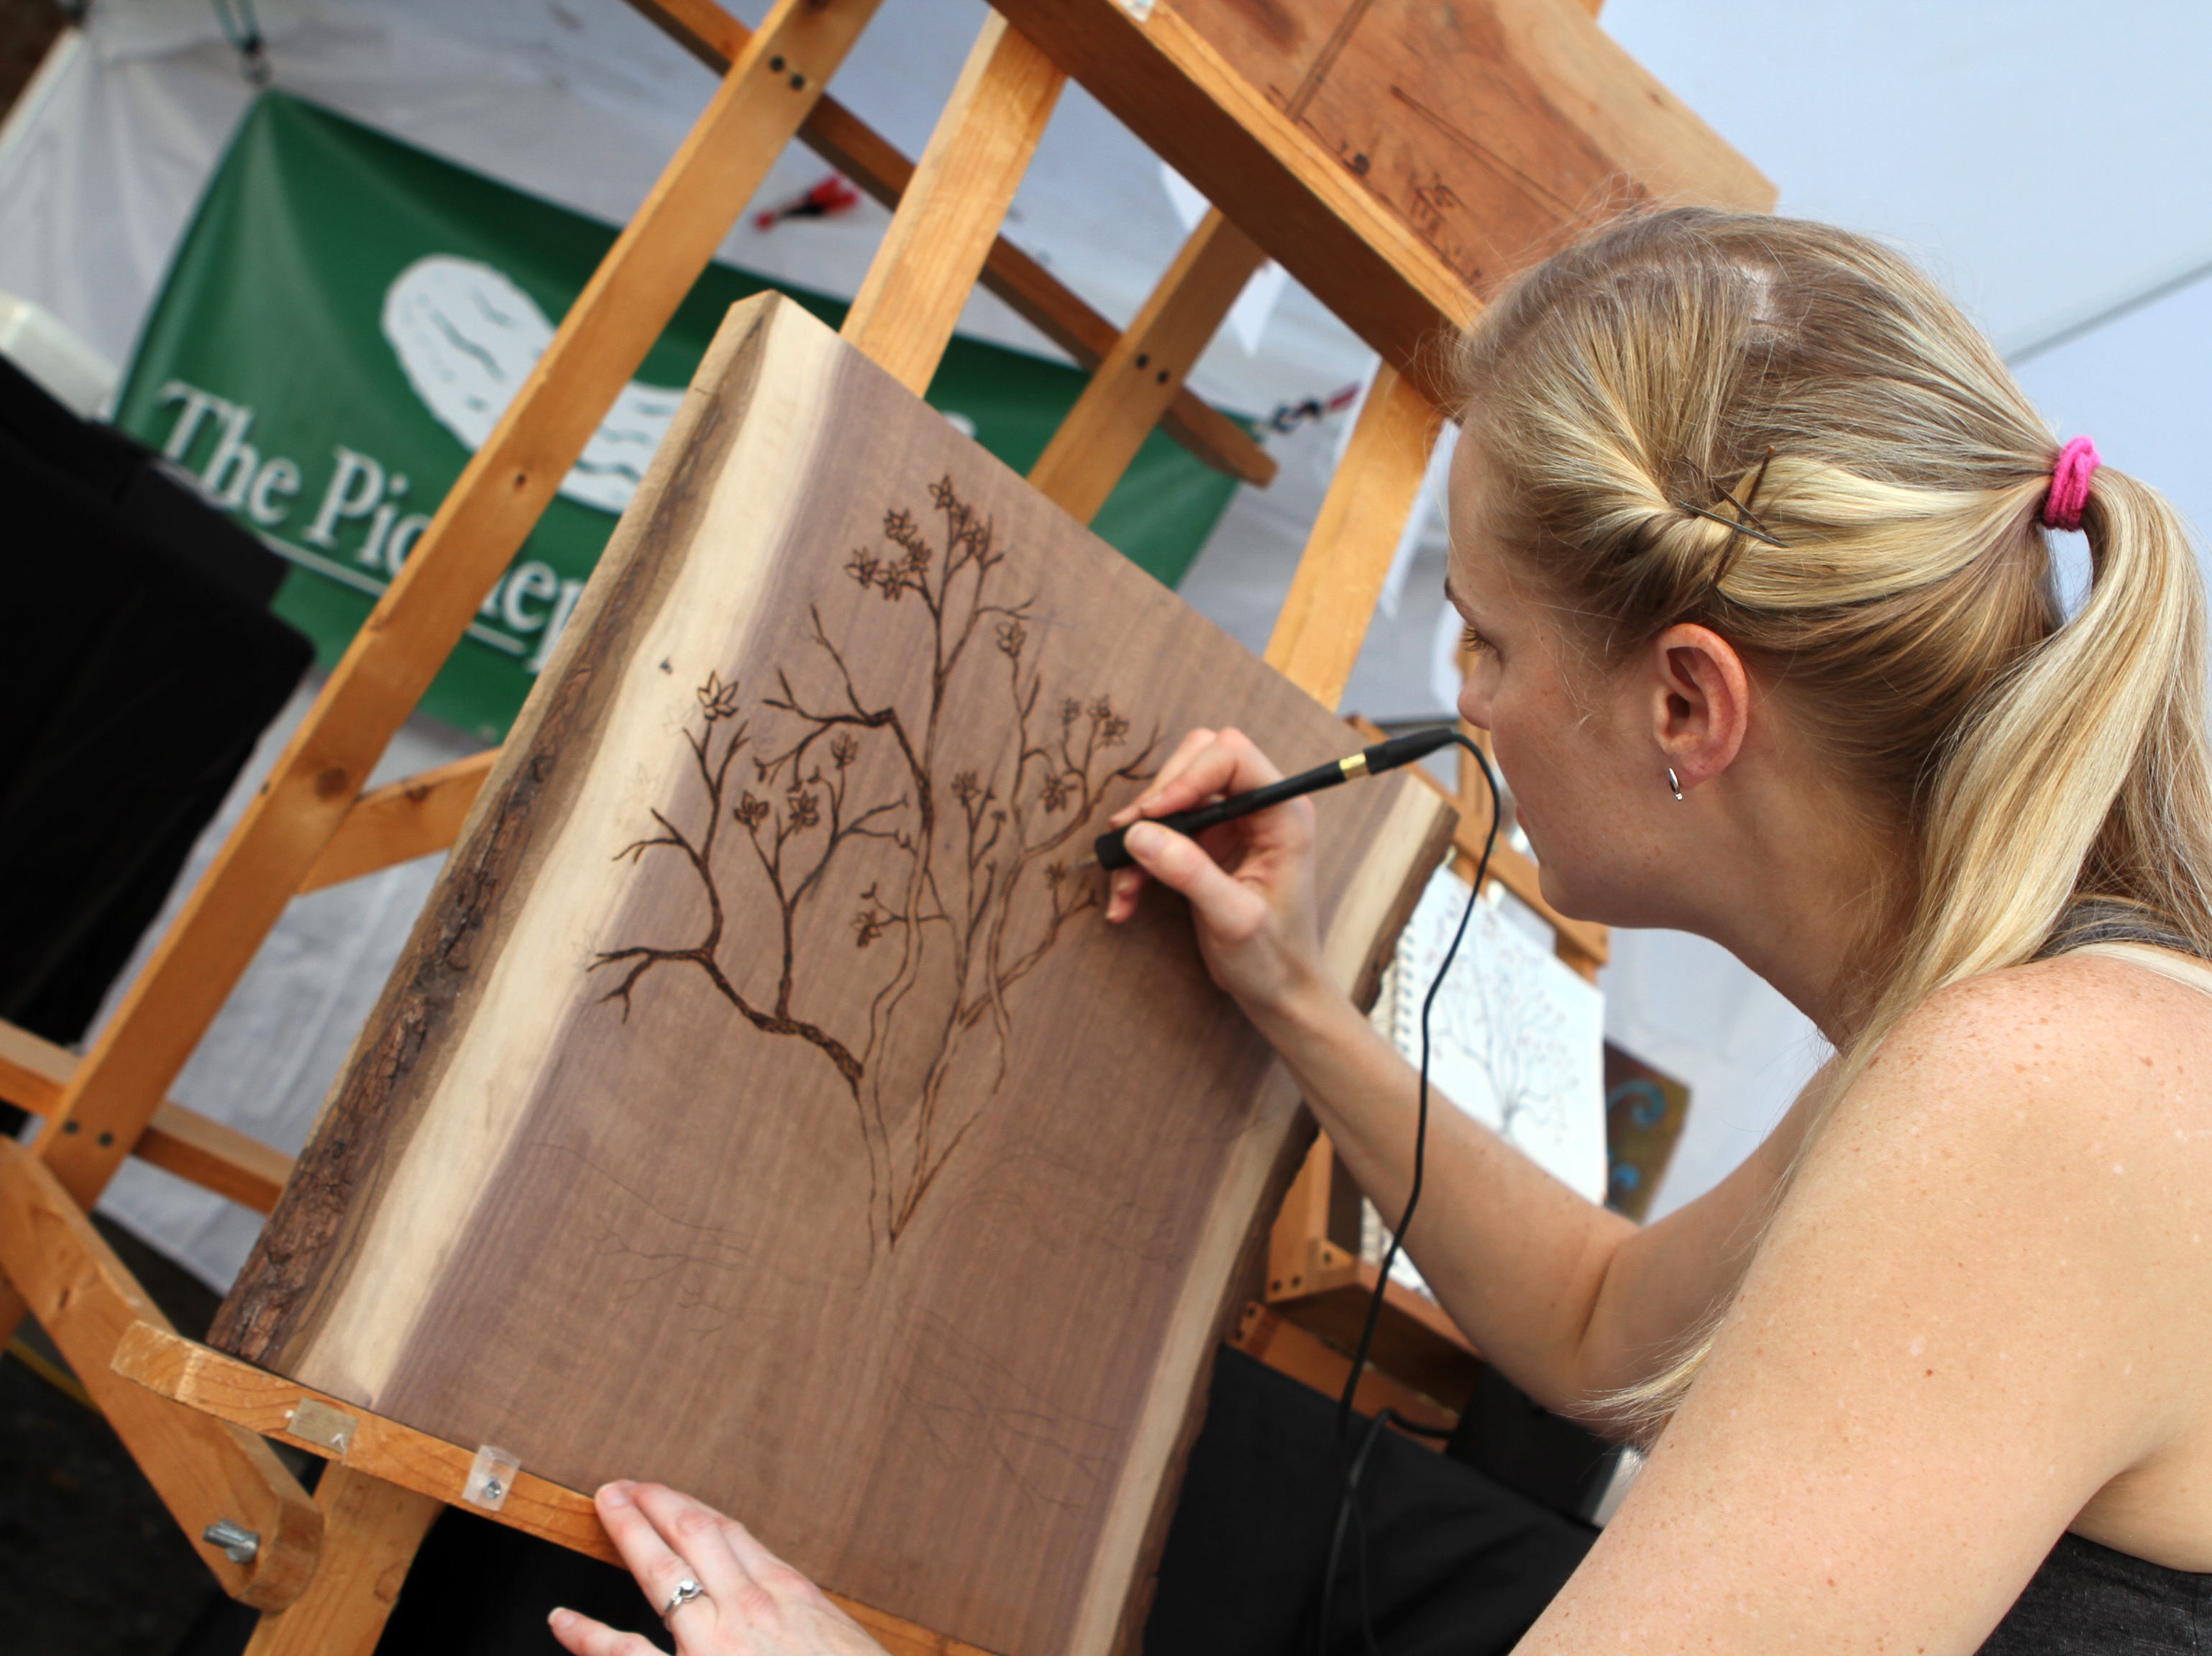 Jackie Lewis demonstrates the art of woodburning at Frolic on Franklin Saturday, Sept, 15, 2018.